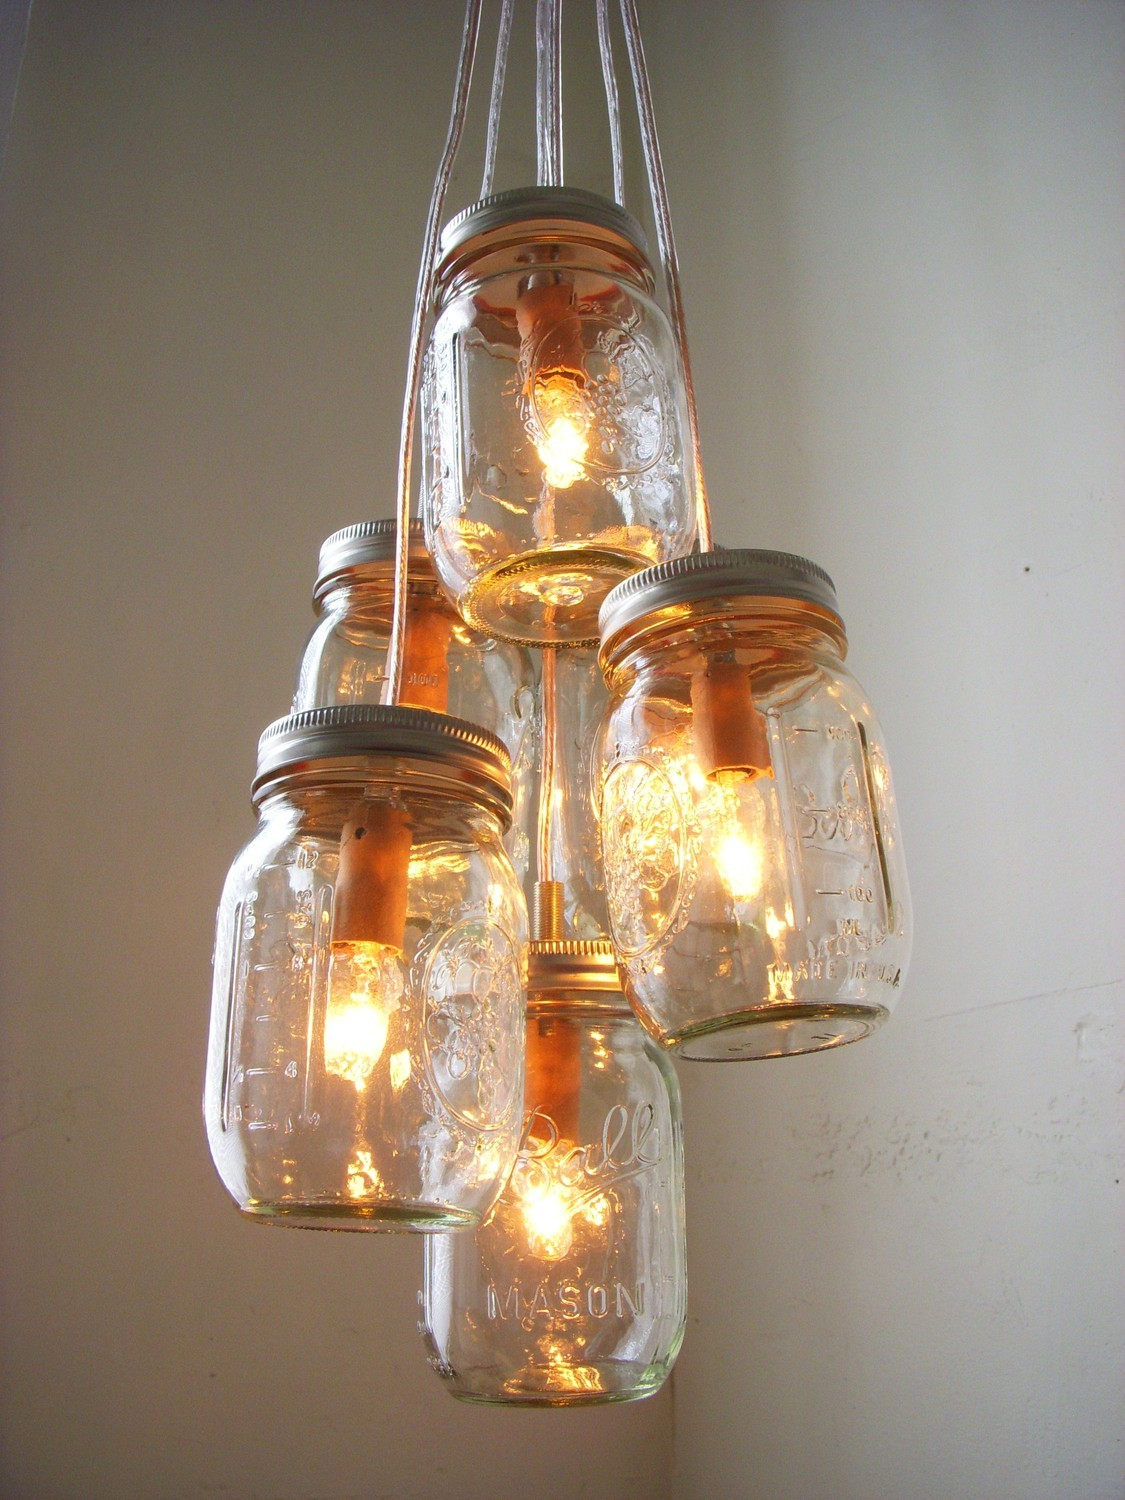 The gael gallery design weddings decor fashion through the mason jar chandelier by bootsngus via etsy arubaitofo Gallery